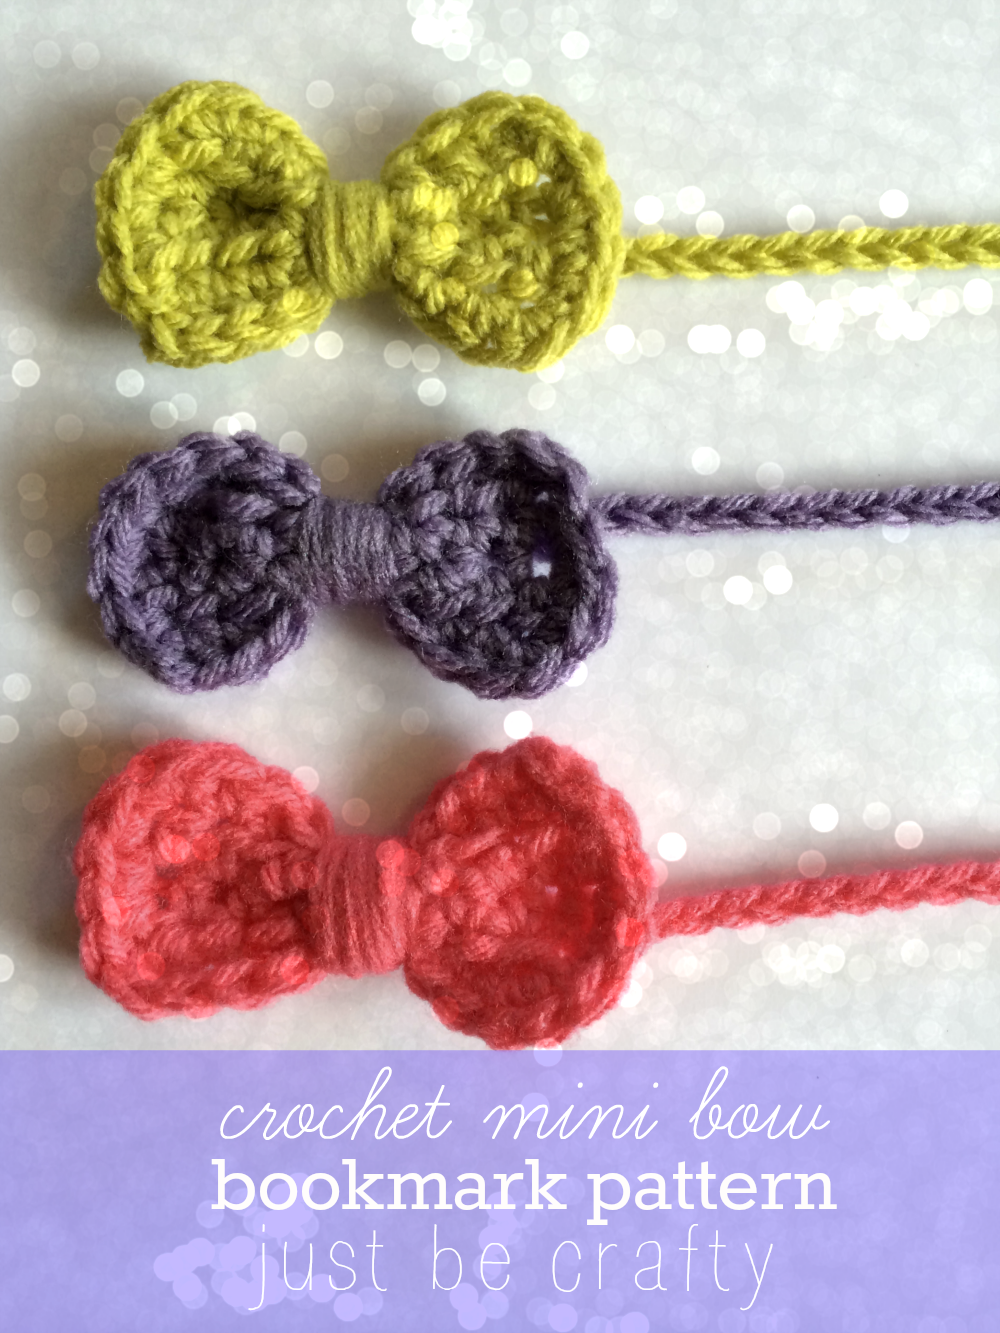 Mini bow bookmark a free crochet pattern tutorial free mini bow bookmark a free crochet pattern tutorial bankloansurffo Gallery